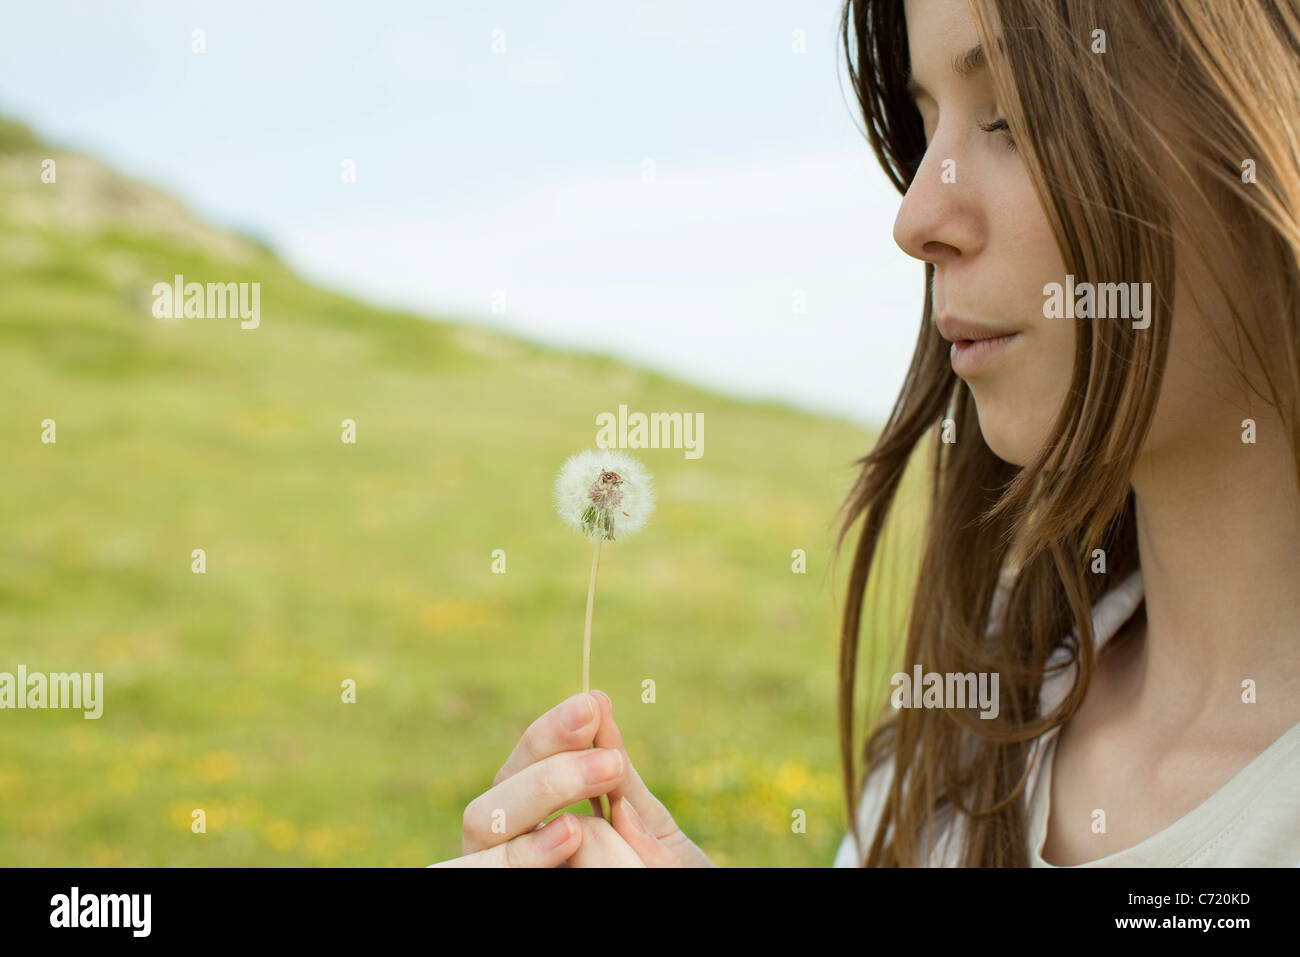 Young woman blowing on dandelion clock - Stock Image